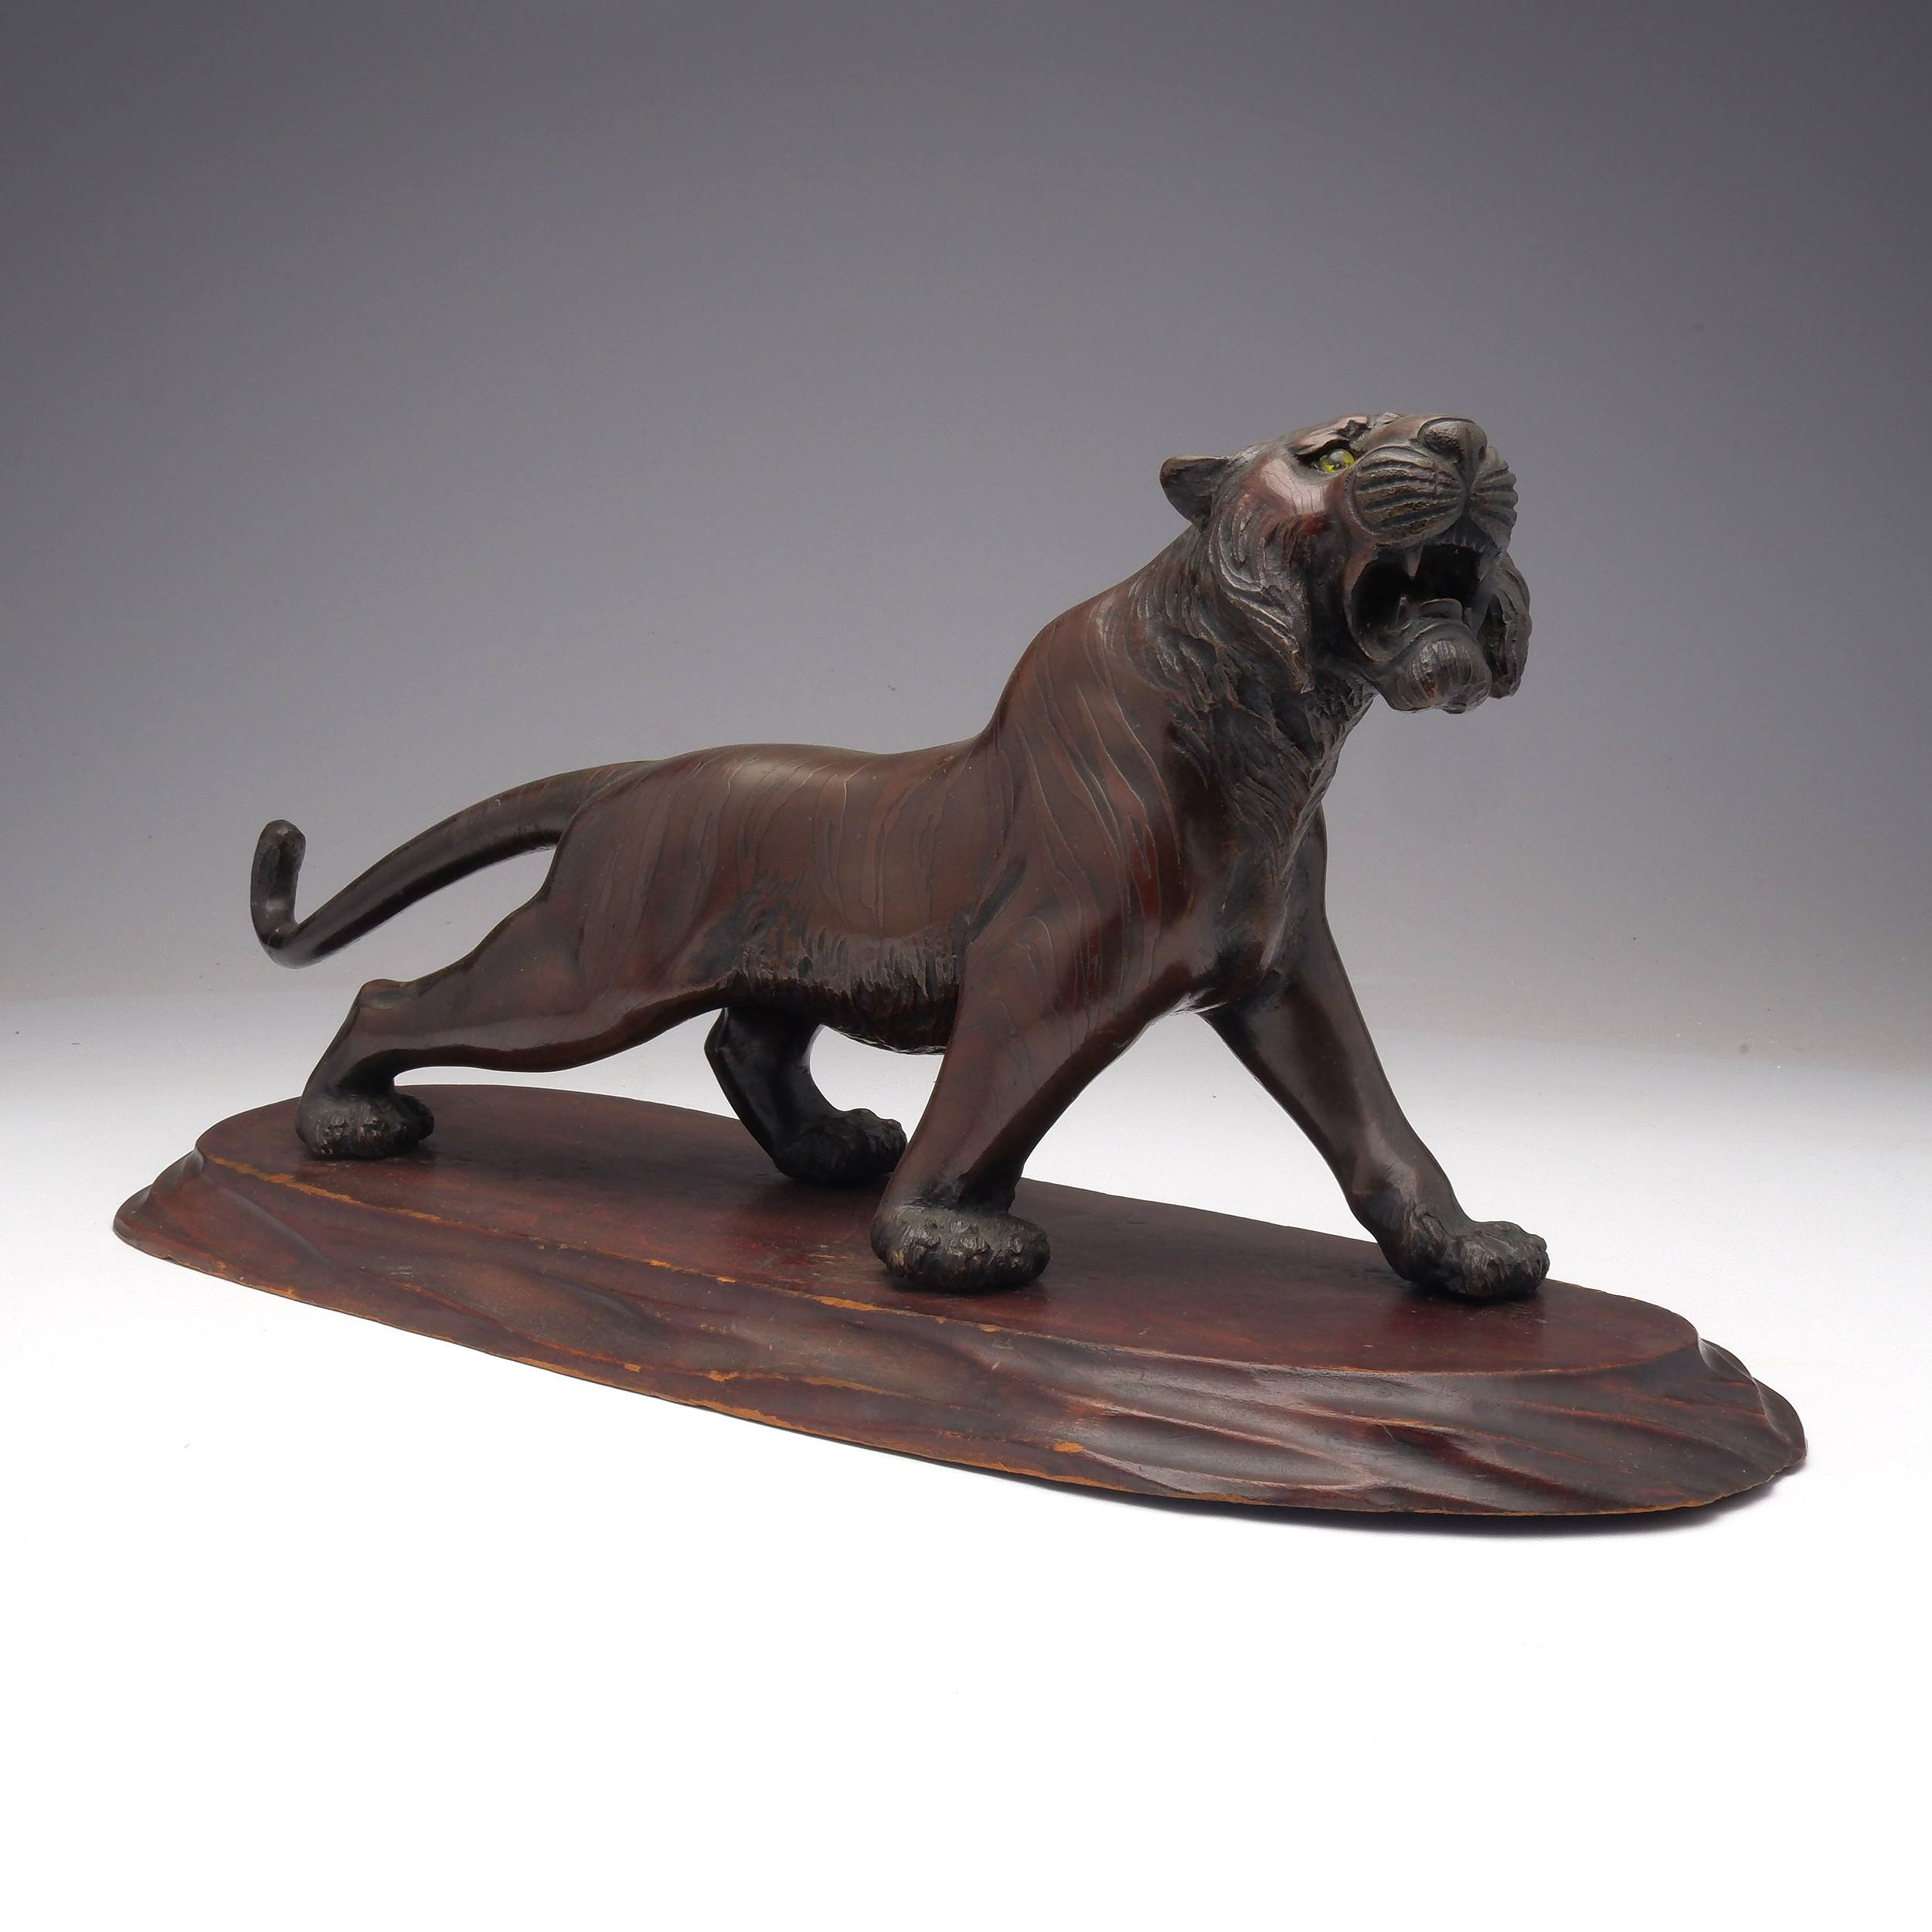 'Japanese Patinated Bronze Model of a Stalking Tiger on a Carved Wood Base, Meiji Period 1868-1912'